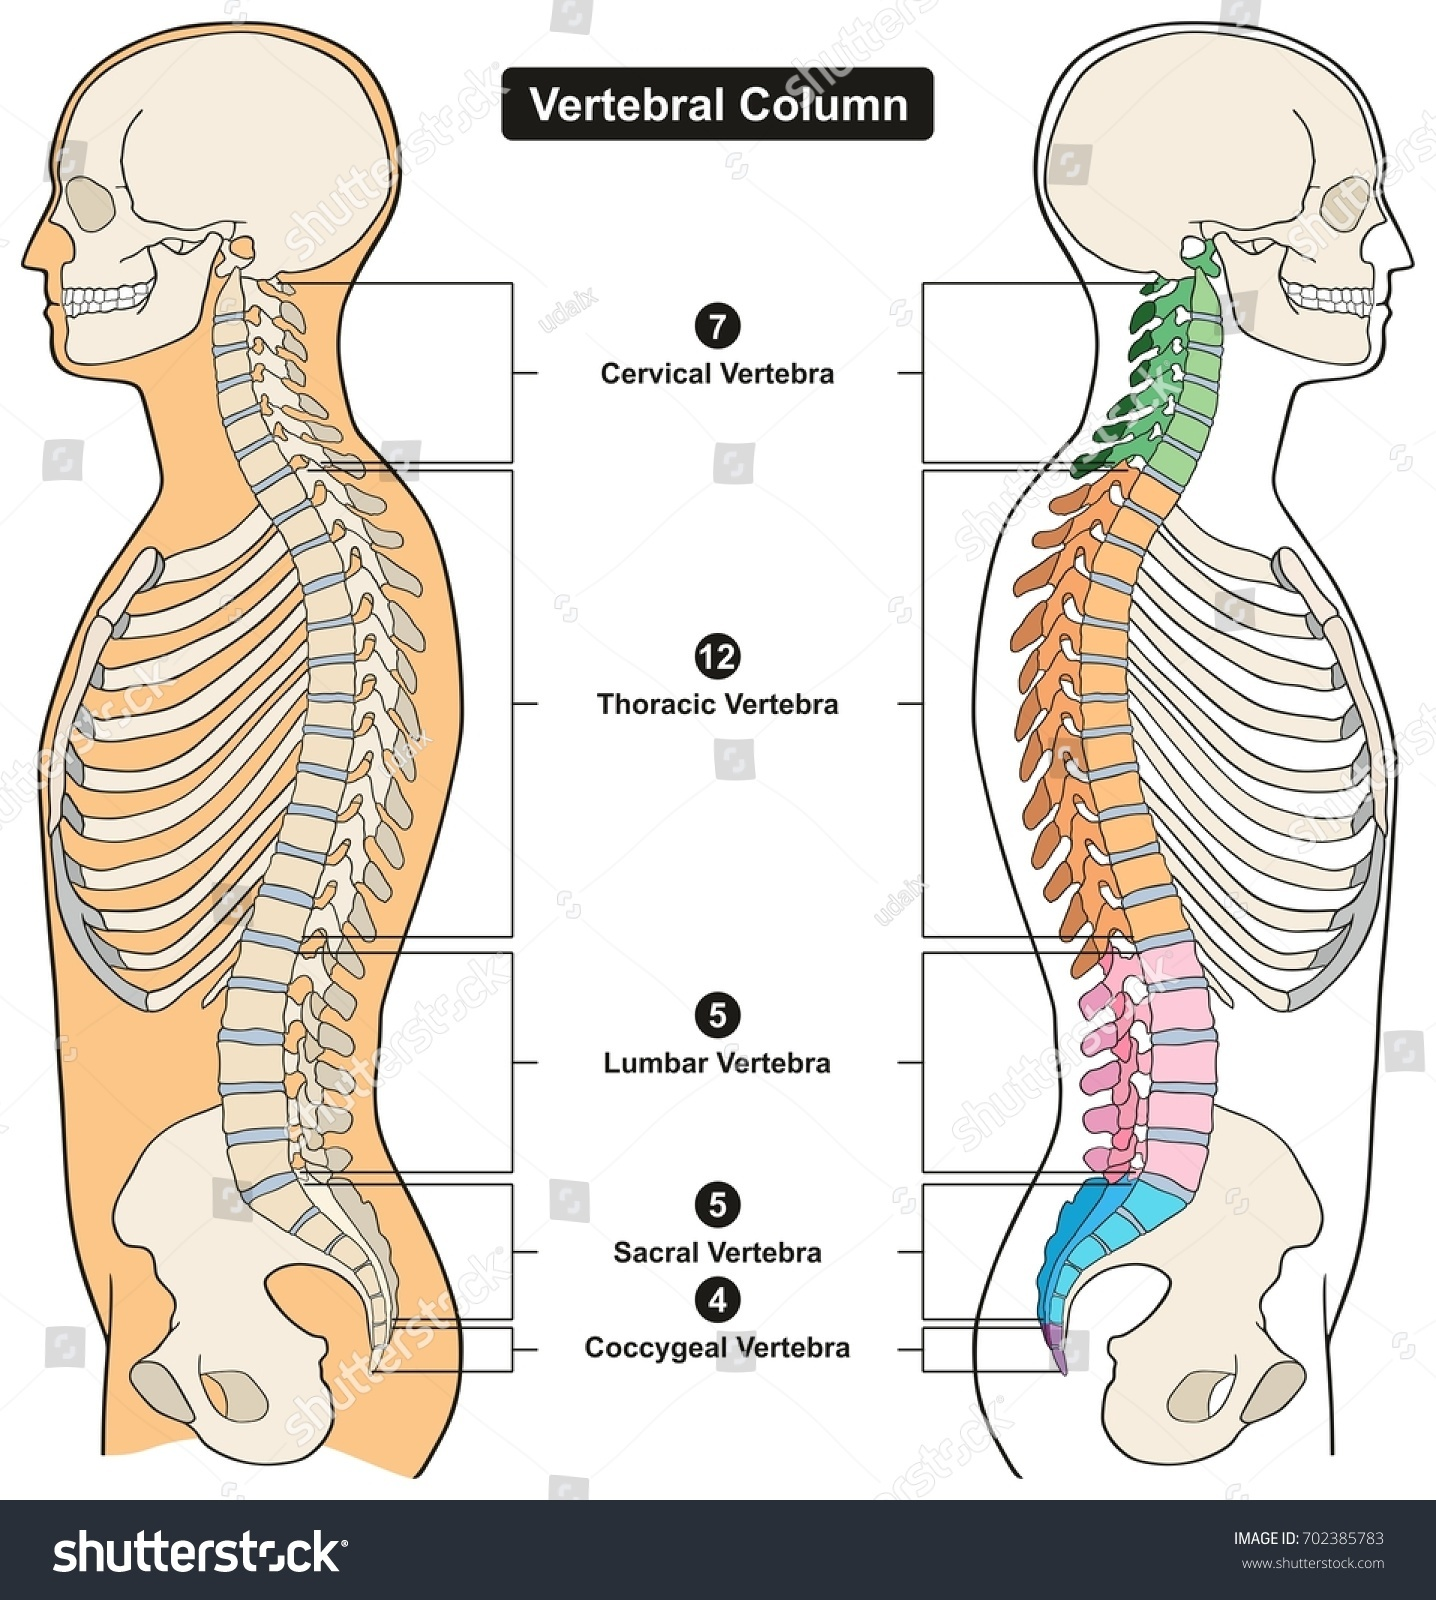 Vertebral Column Human Body Anatomy Infograpic Stock Vector Royalty